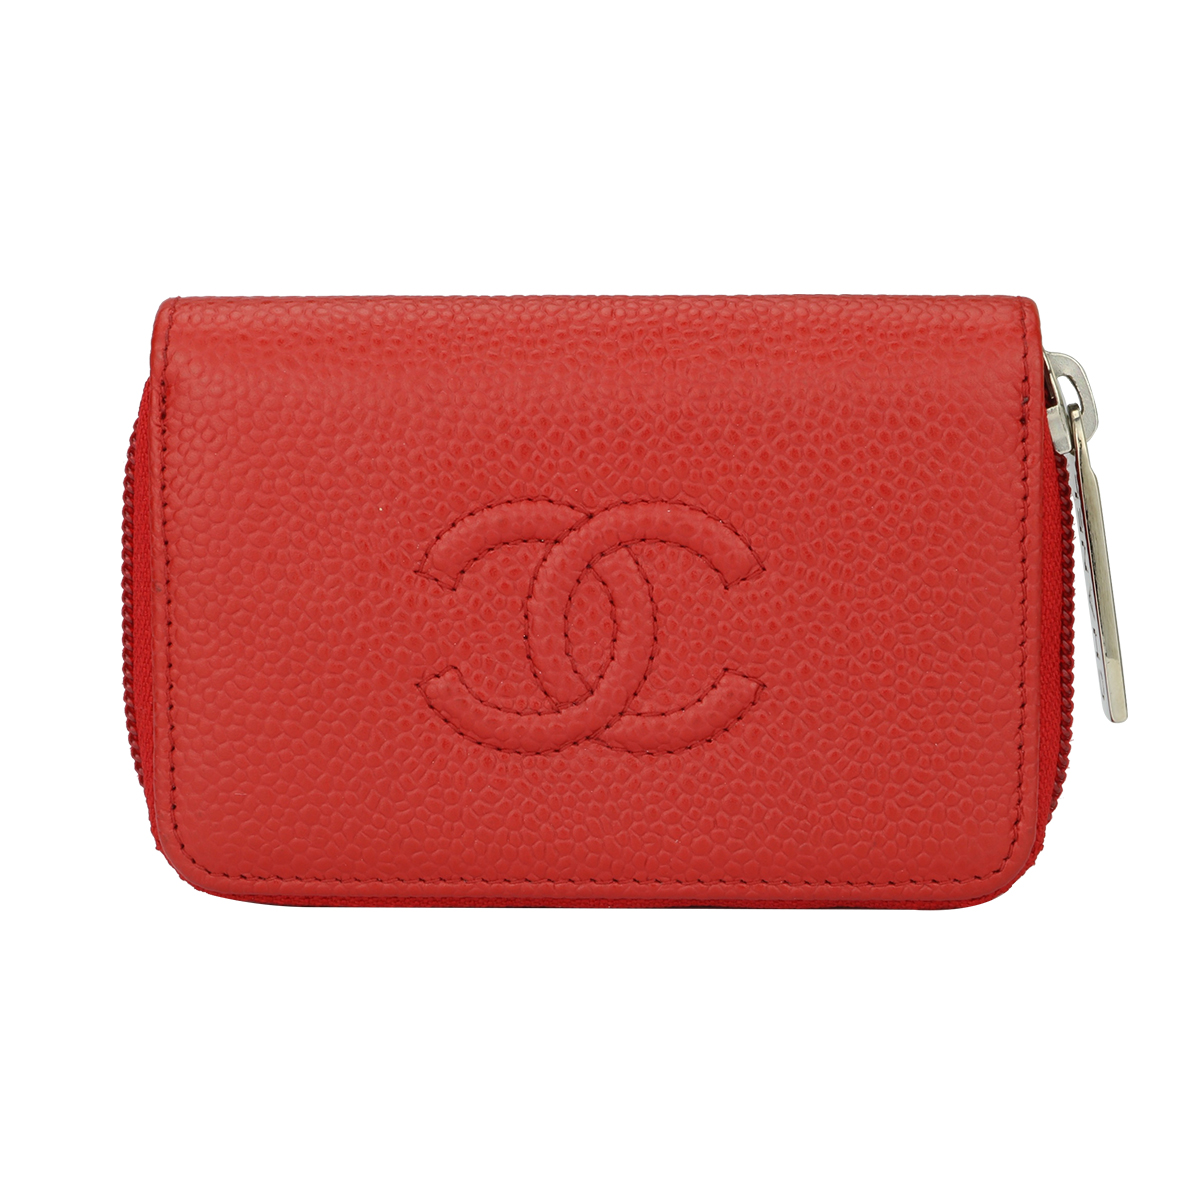 df24ac75bbce Chanel Small Zip Wallet Coin Purse Red Caviar Silver Hardware 2016